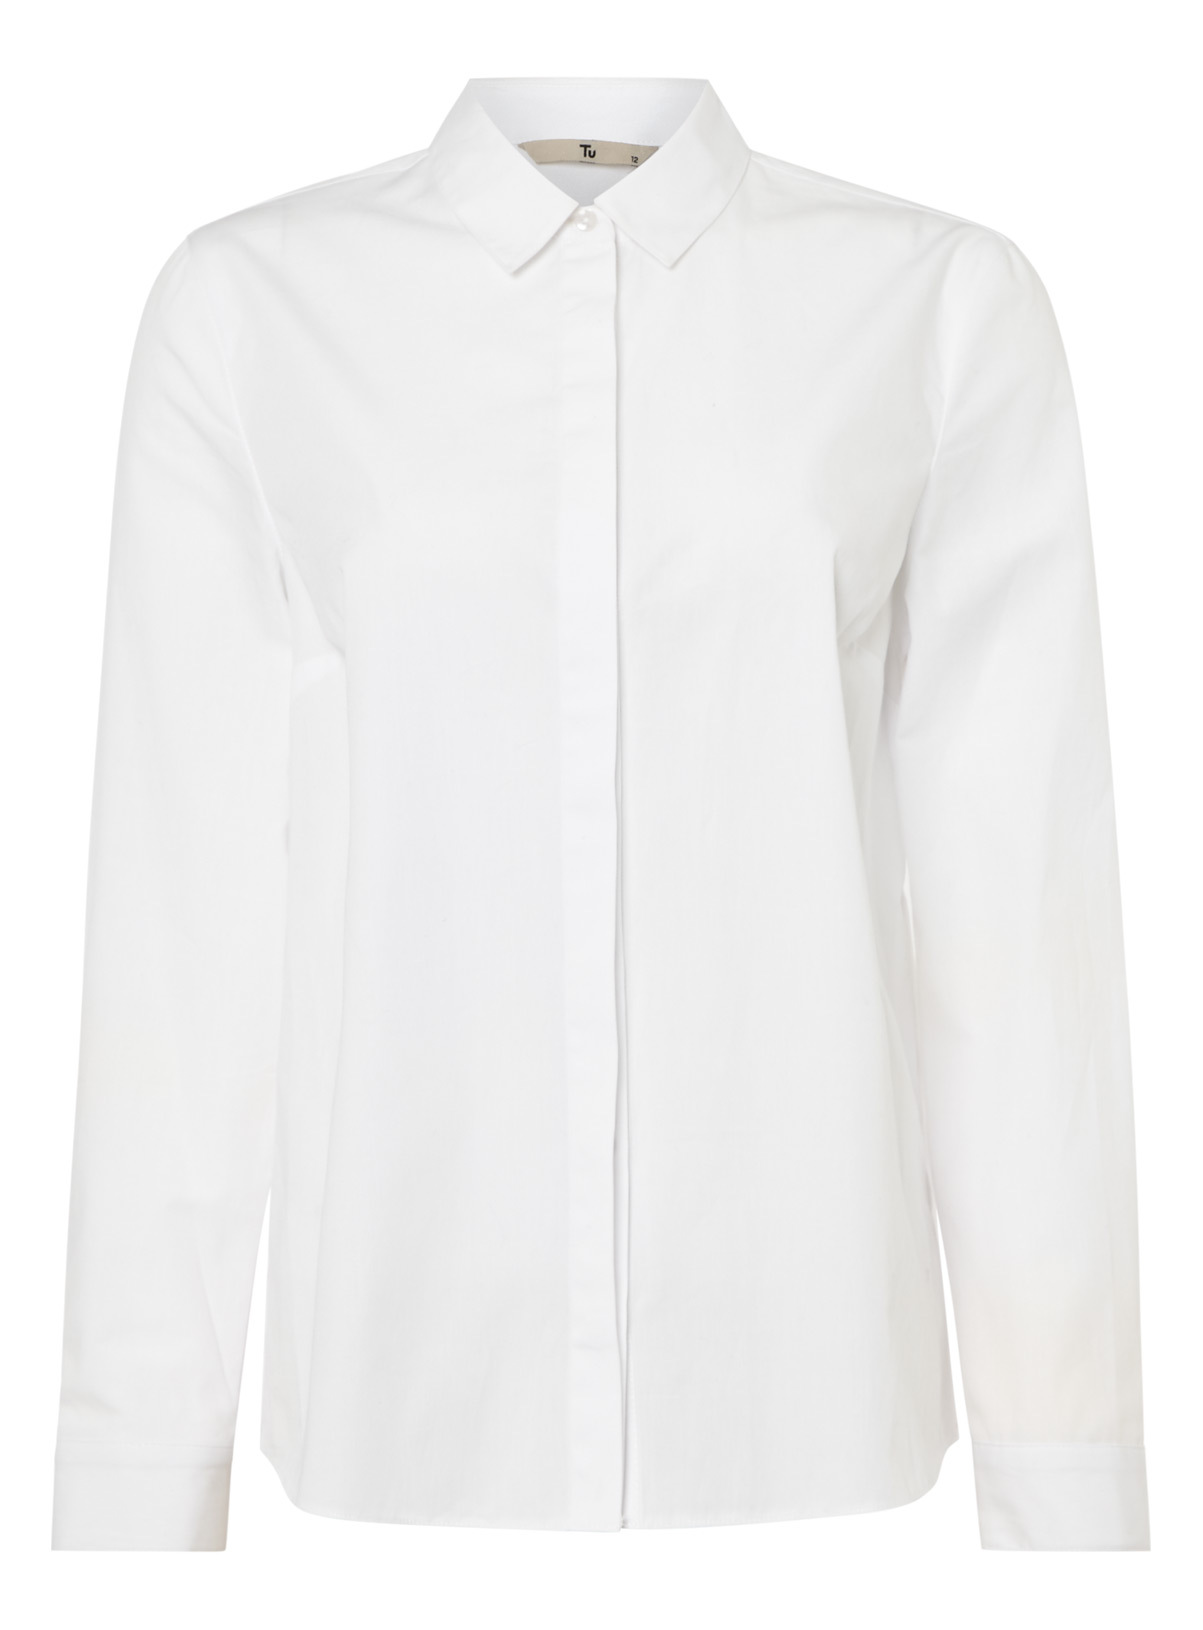 Womens White Plain Shirt | Tu clothing